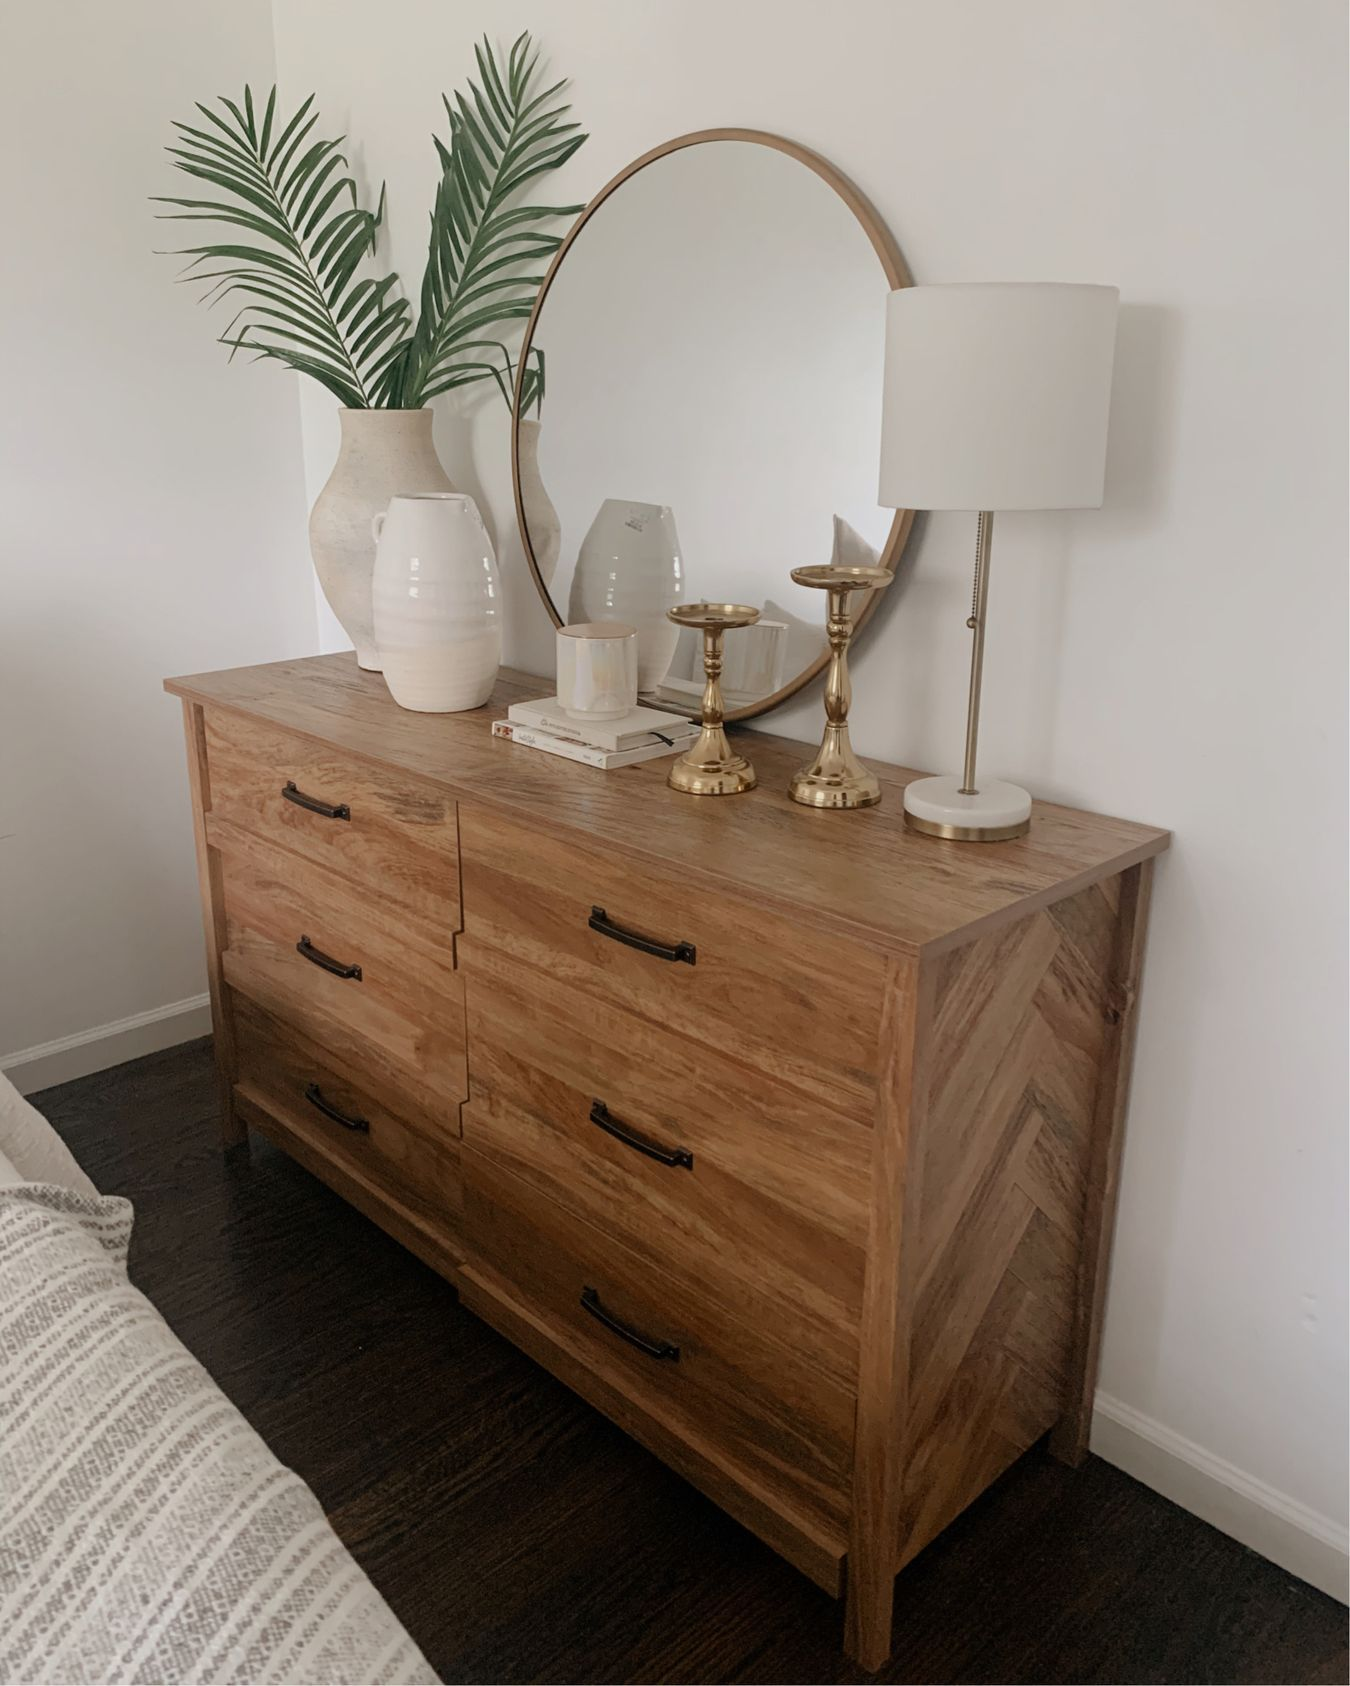 Greyleigh Ringgold 6 Drawer Double … curated on LTK